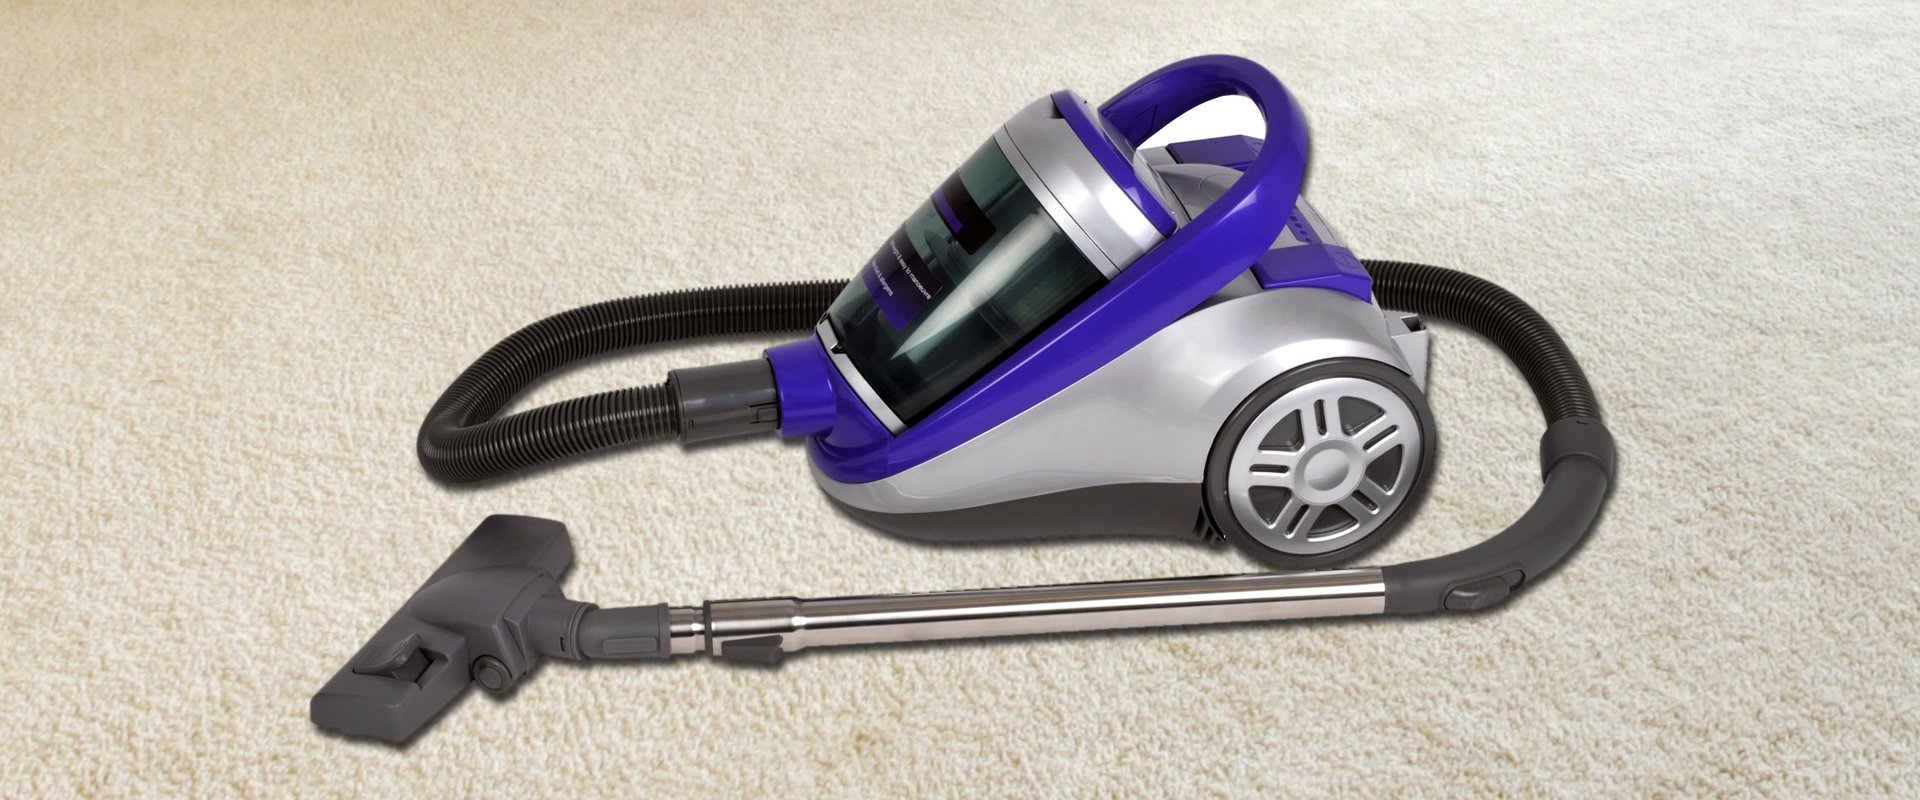 hoover vacuum belt replacement instructions